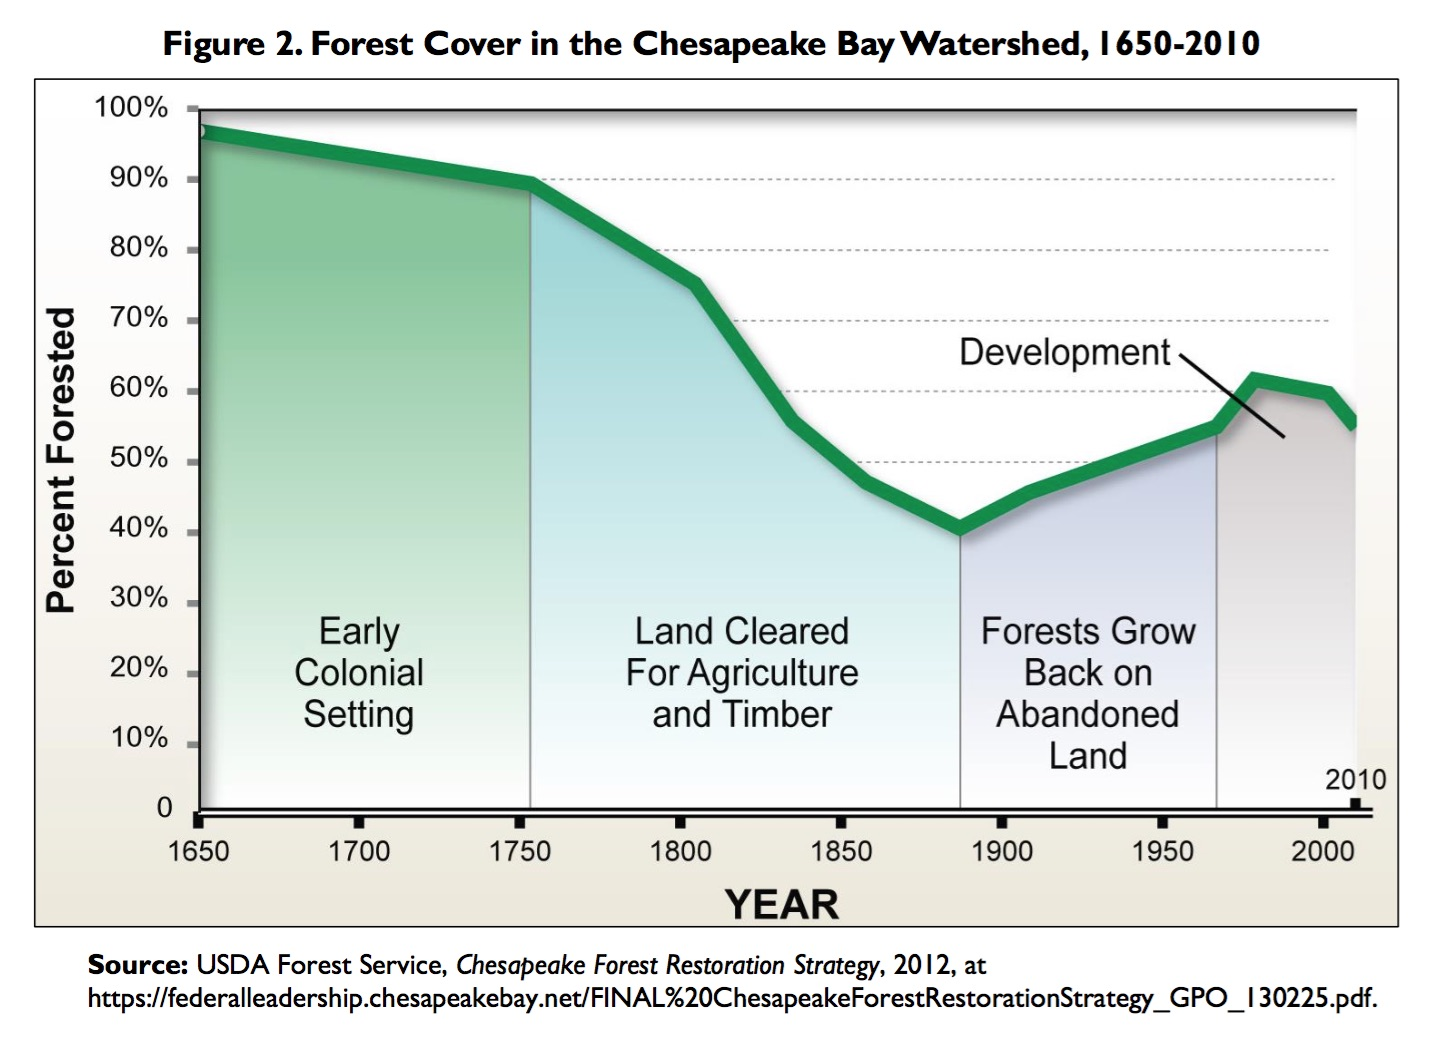 hight resolution of congress began to address ecosystem degradation in the chesapeake bay in 1965 when it authorized the first wide scale study of water resources of the bay